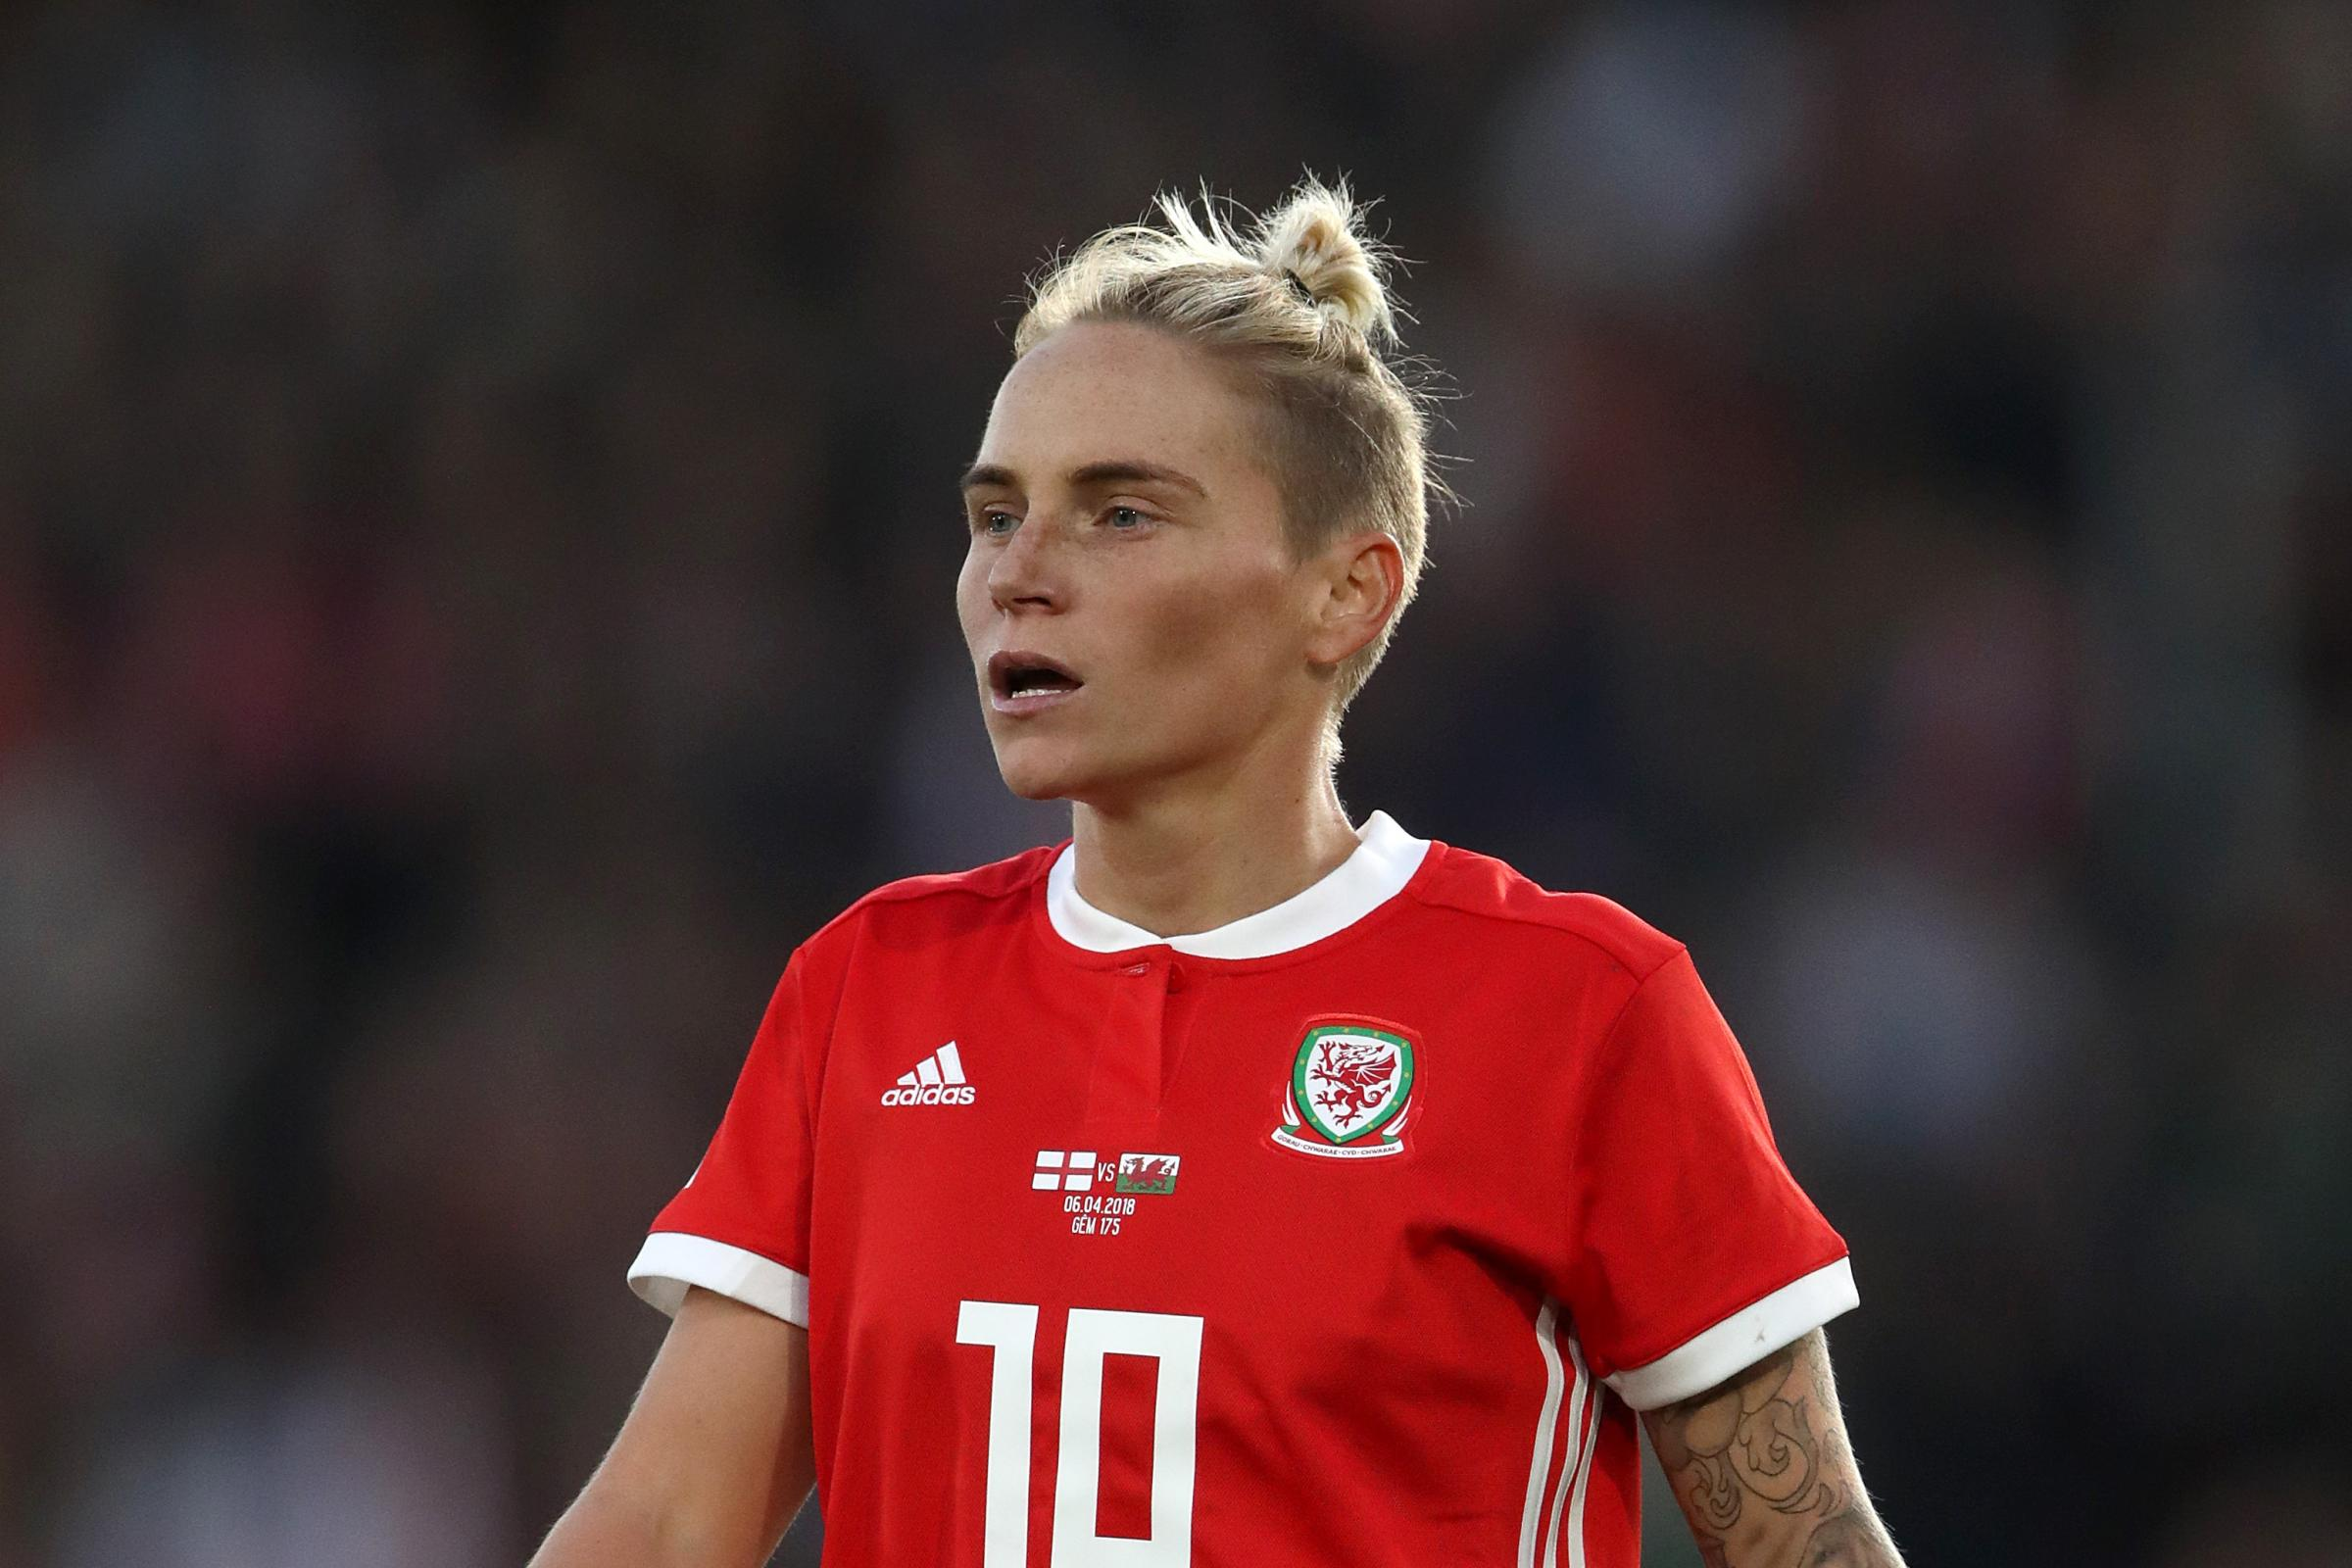 Wales' Lyon midfielder Jess Fishlock is confident the holders can end the Champions League hopes of Chelsea Women